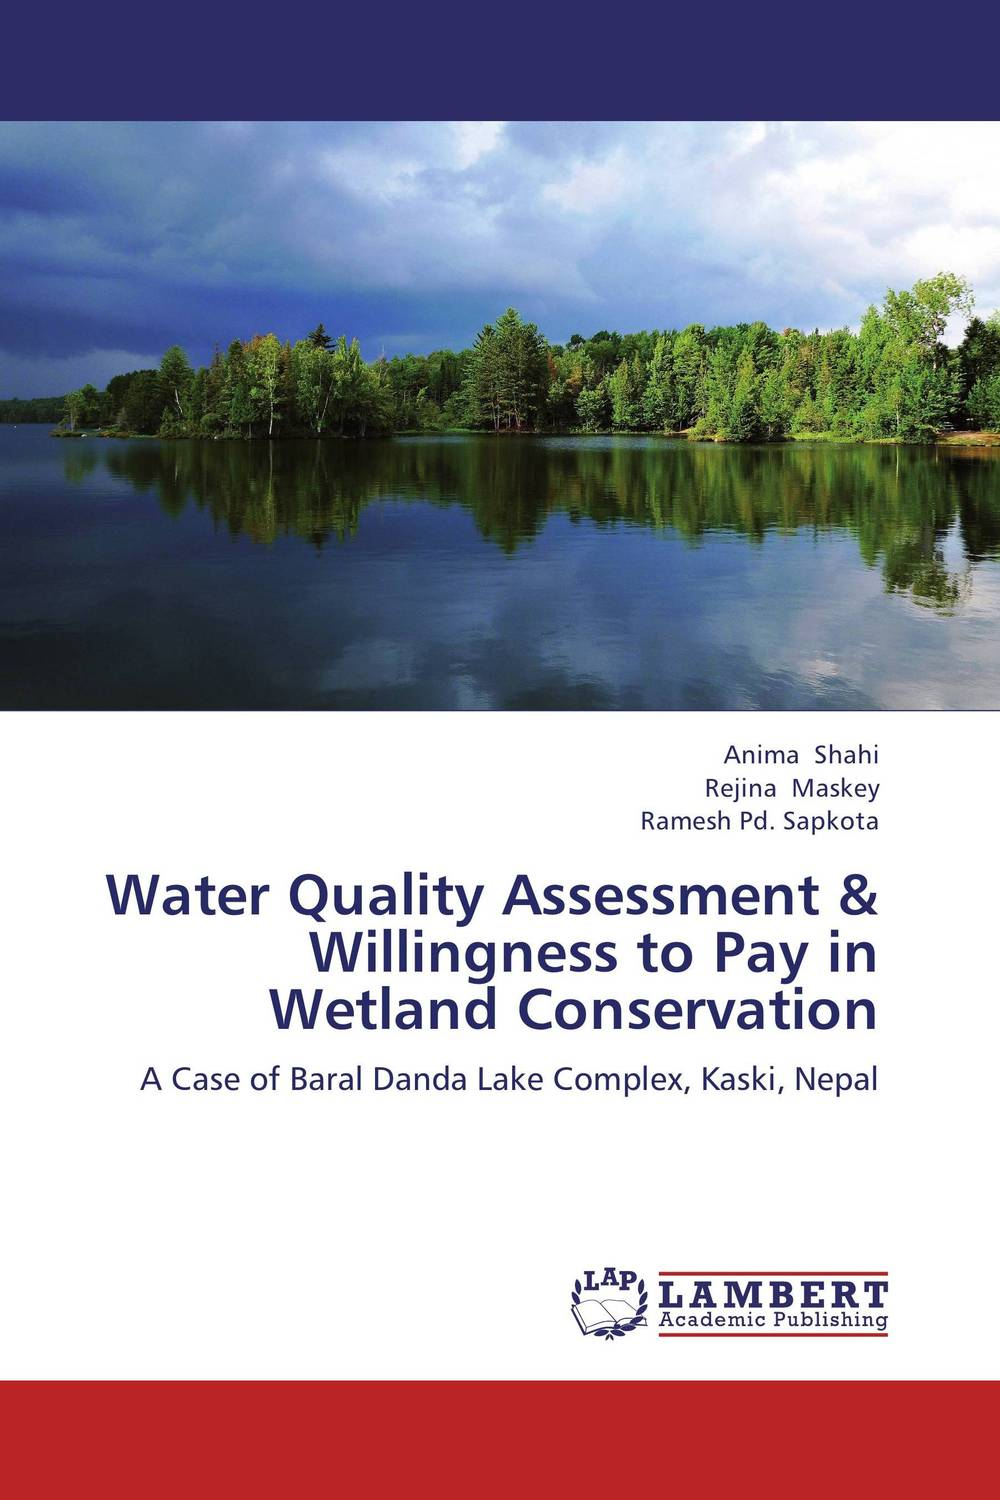 Water Quality Assessment & Willingness to Pay in Wetland Conservation physicochemical and bacteriological water quality assessment